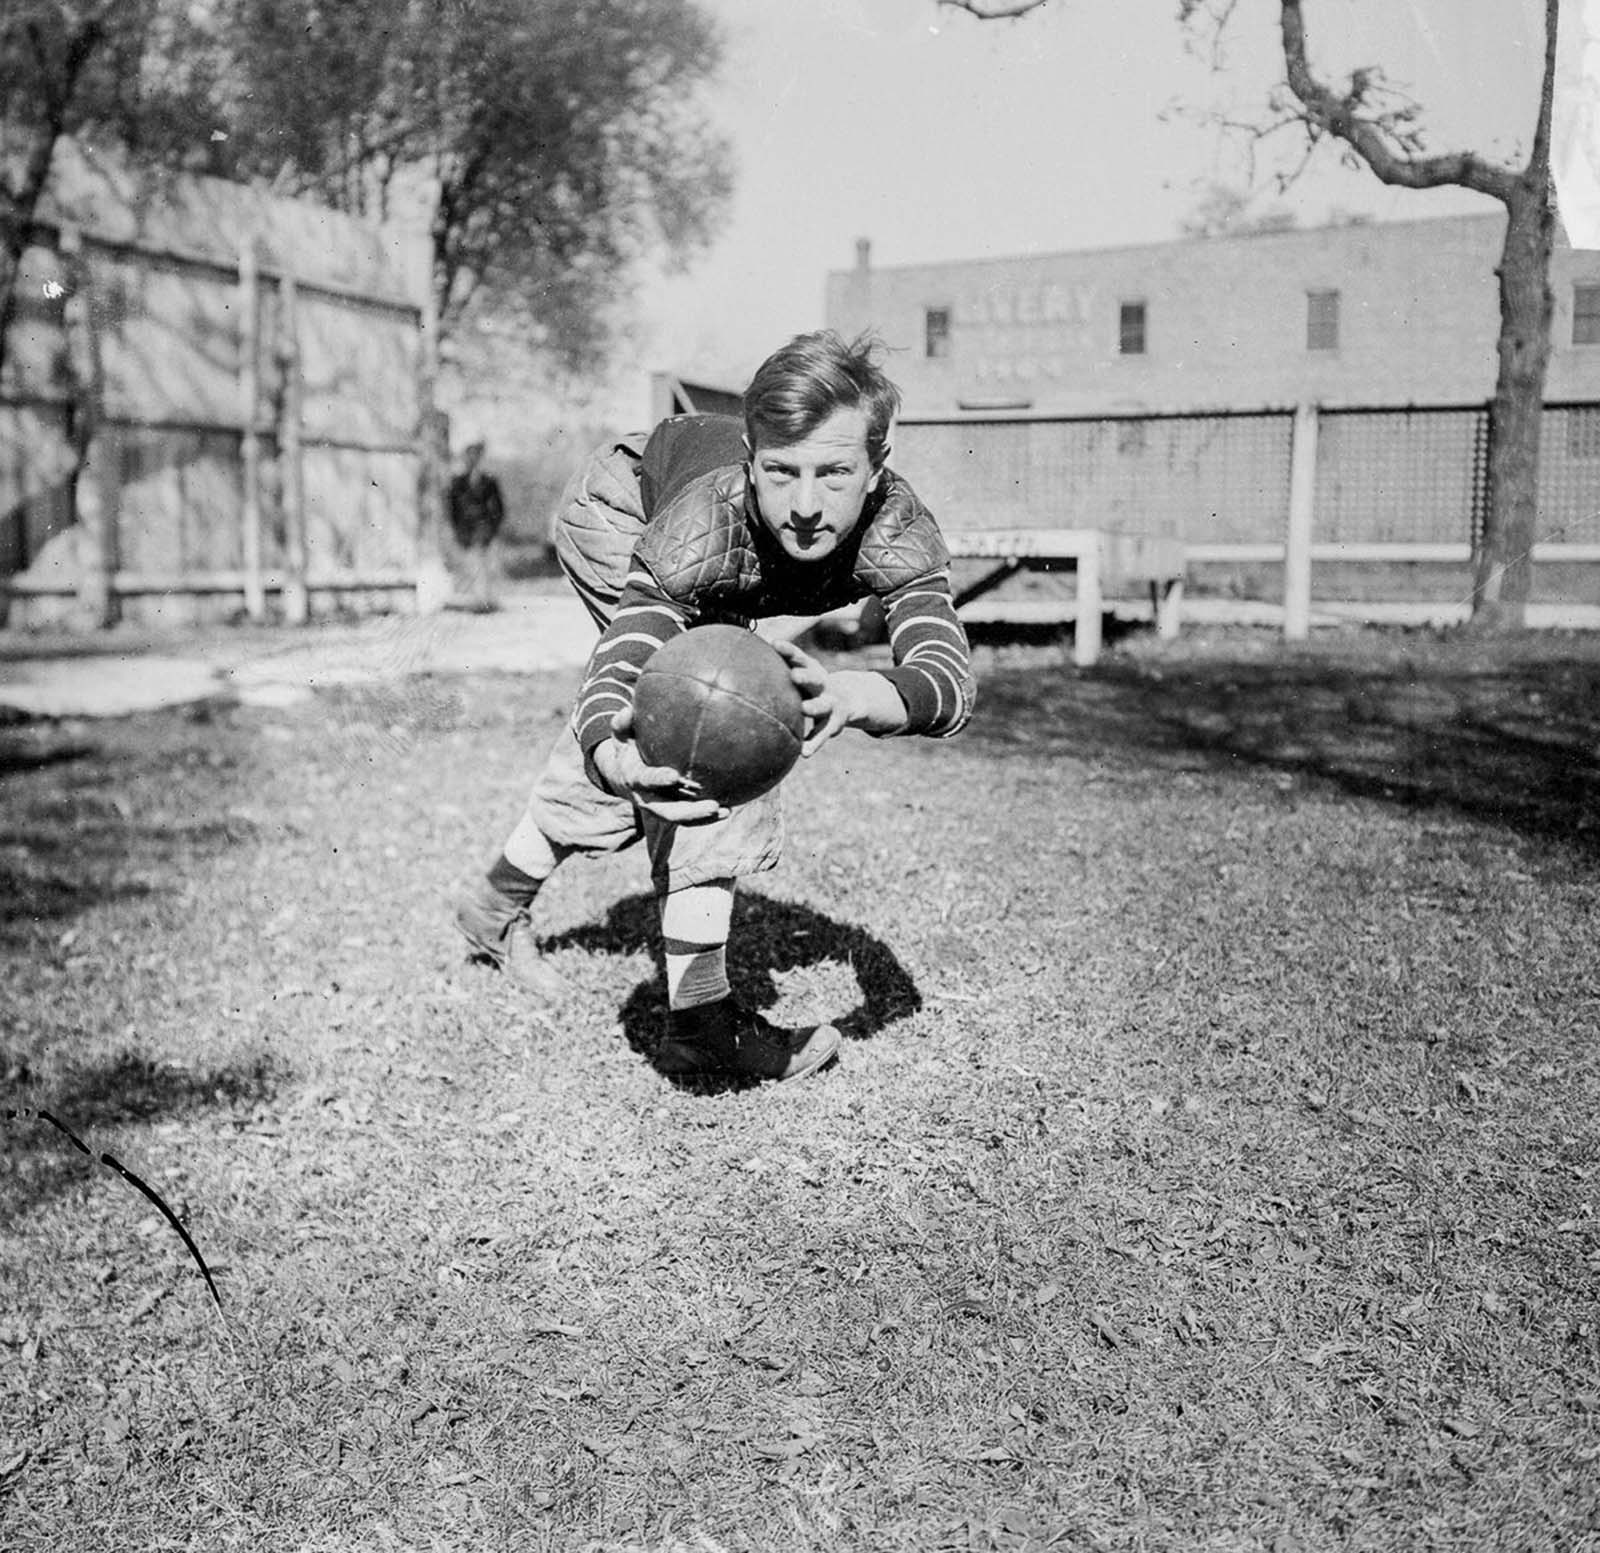 A high school football player in Chicago. 1909.